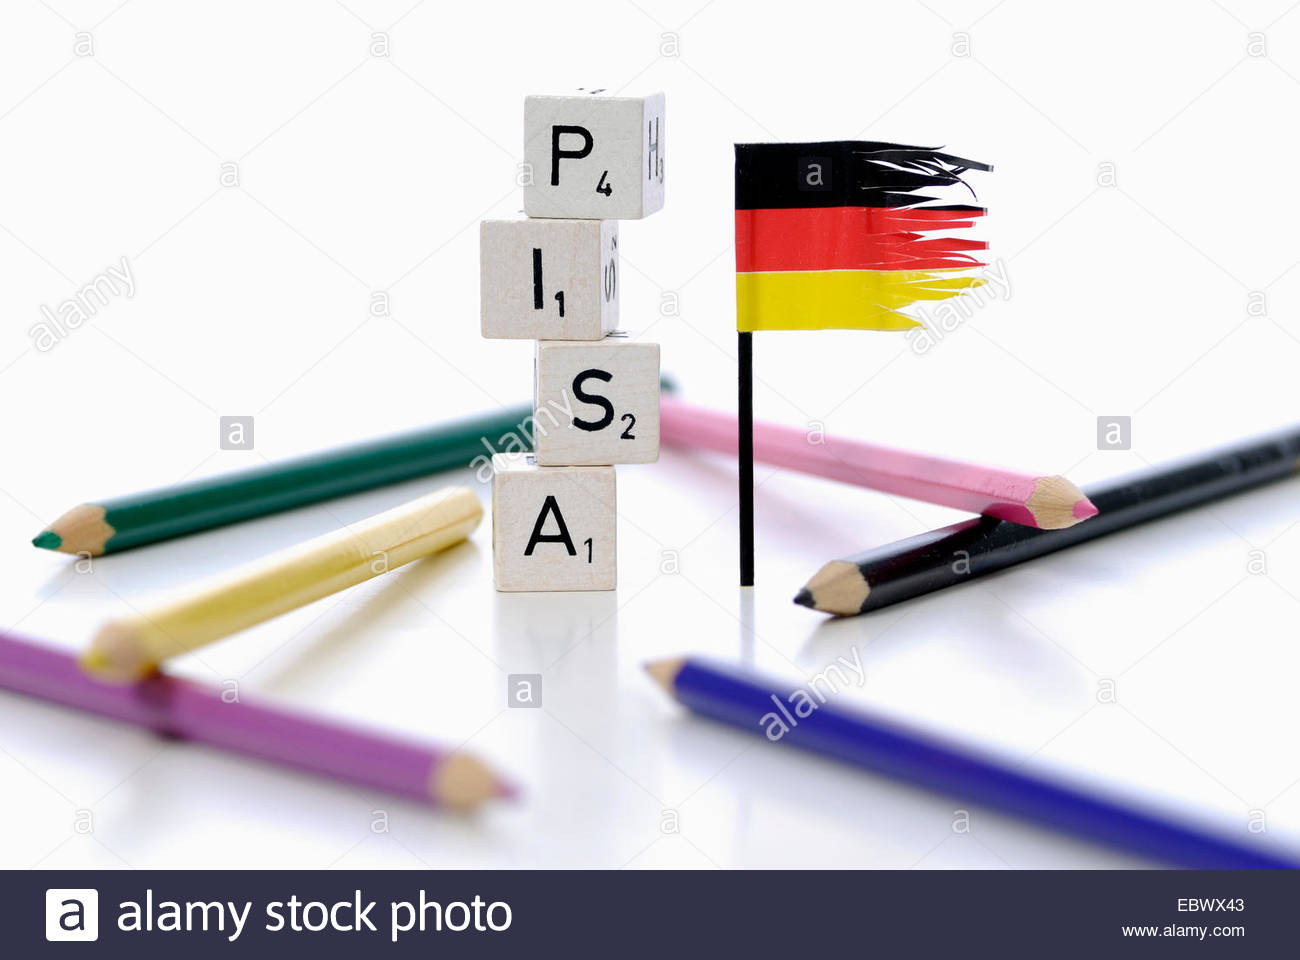 german flag next stack of cubes labeled 'PISA', Programme for International Student Assessment Stock Photo